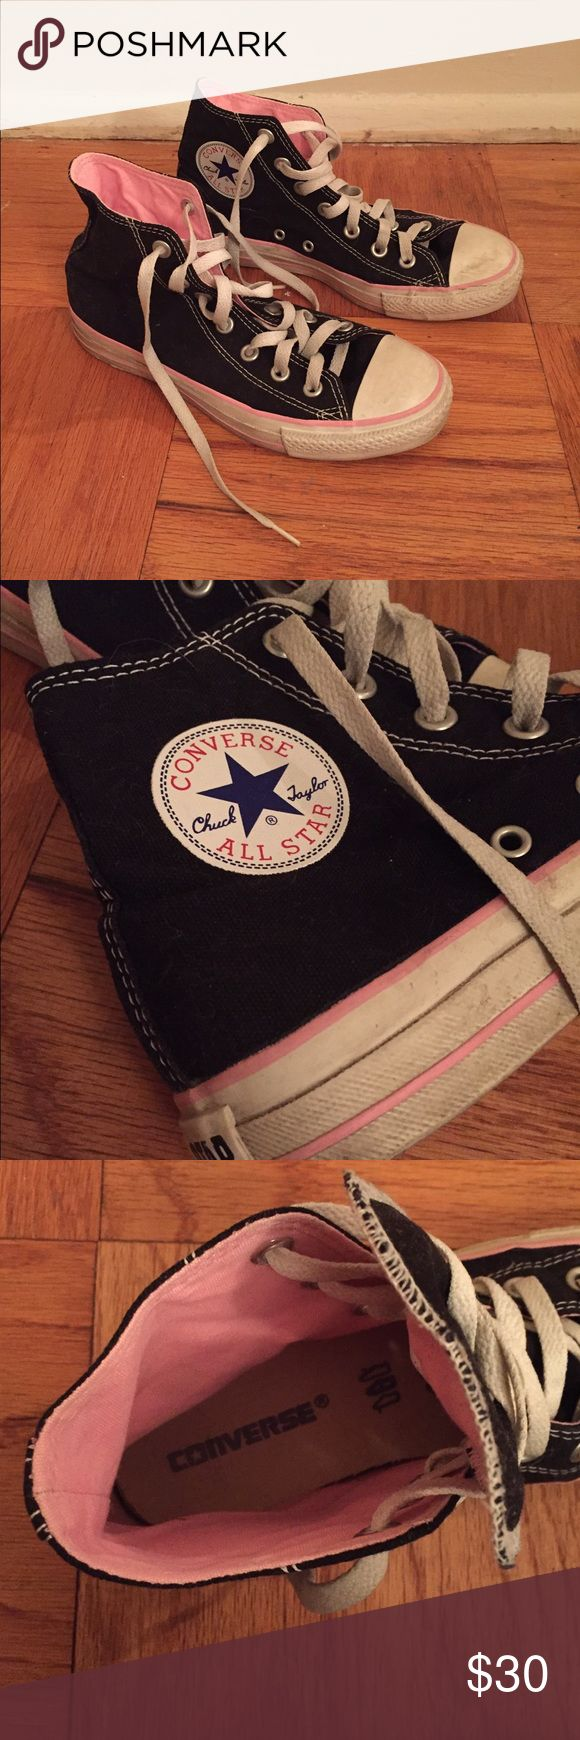 Women's Chuck Taylor Converse High Tops Chuck Taylor Converse High Tops with light pink accents. Vintage all-star style. Converse Shoes Sneakers